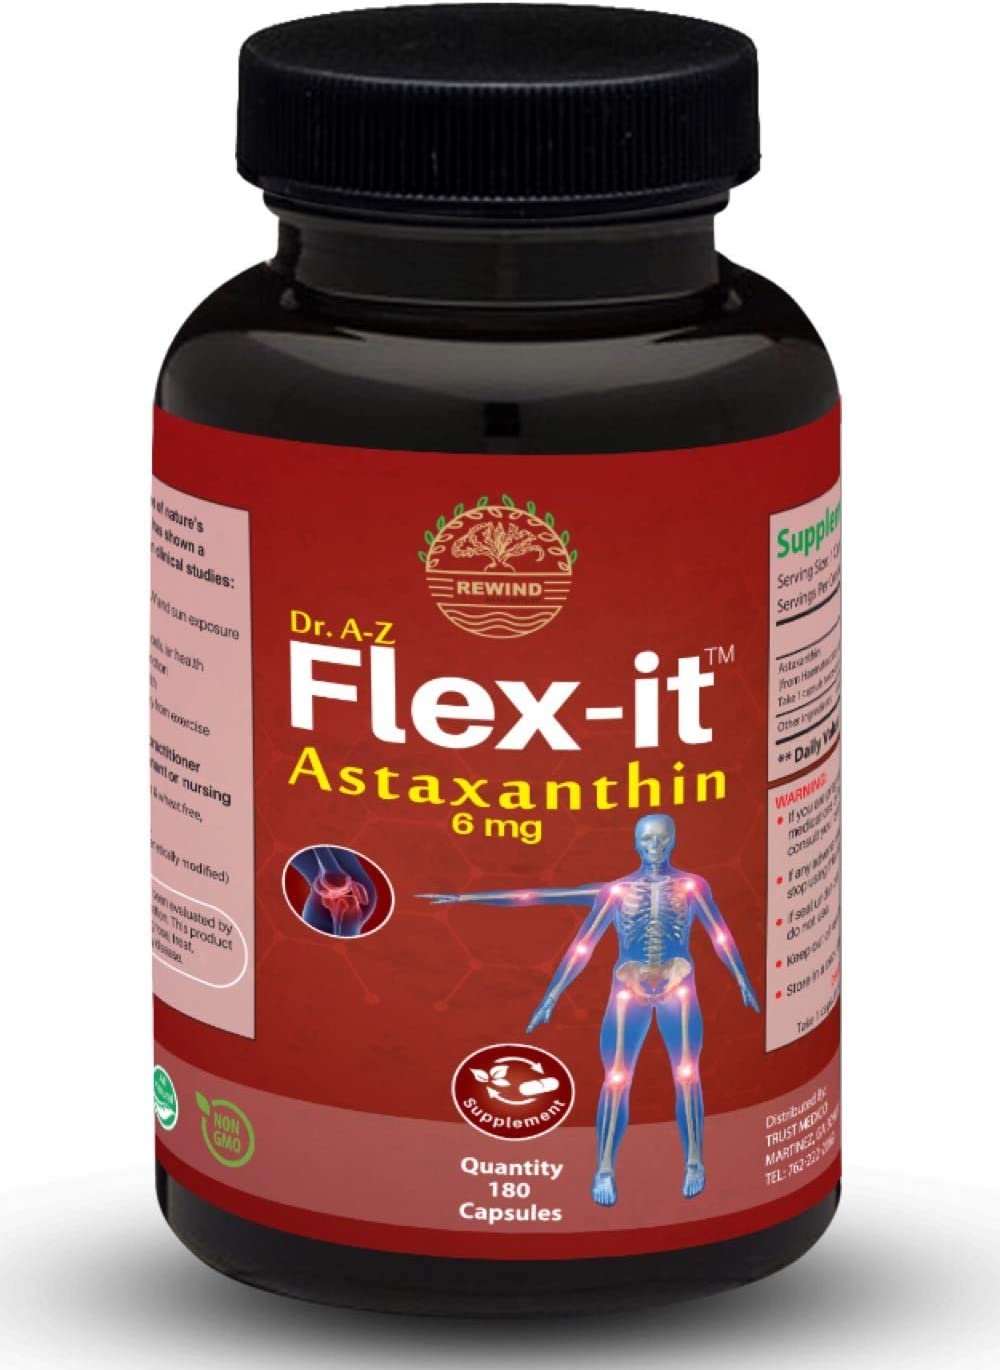 Astaxanthin 6mg Antioxidant derived from Non-GMO Haematococcus Pluvialis Microalgae Naturally Occurring Algae Helps As Sunscreen Pill, Eye, Immune by Flexit